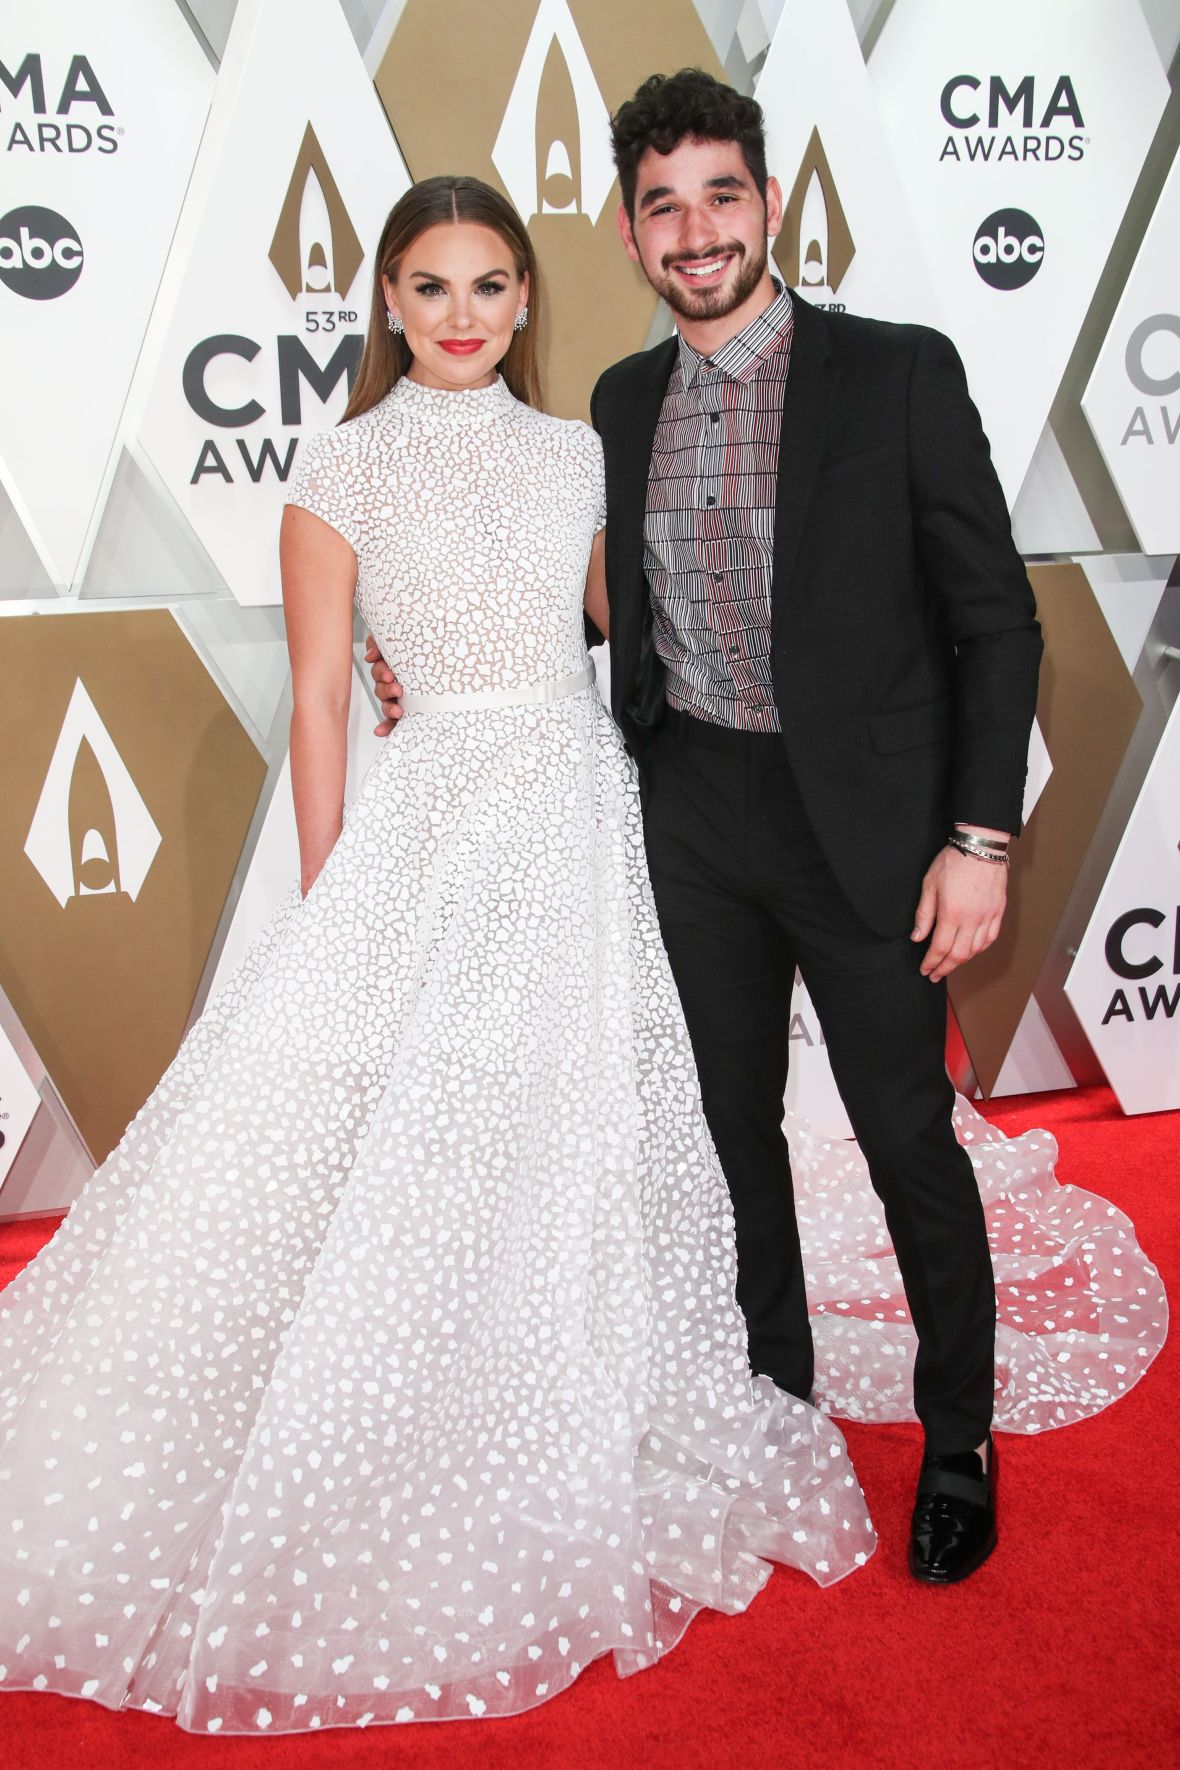 Hannah Brown and Alan Bersten CMAs Red Carpet